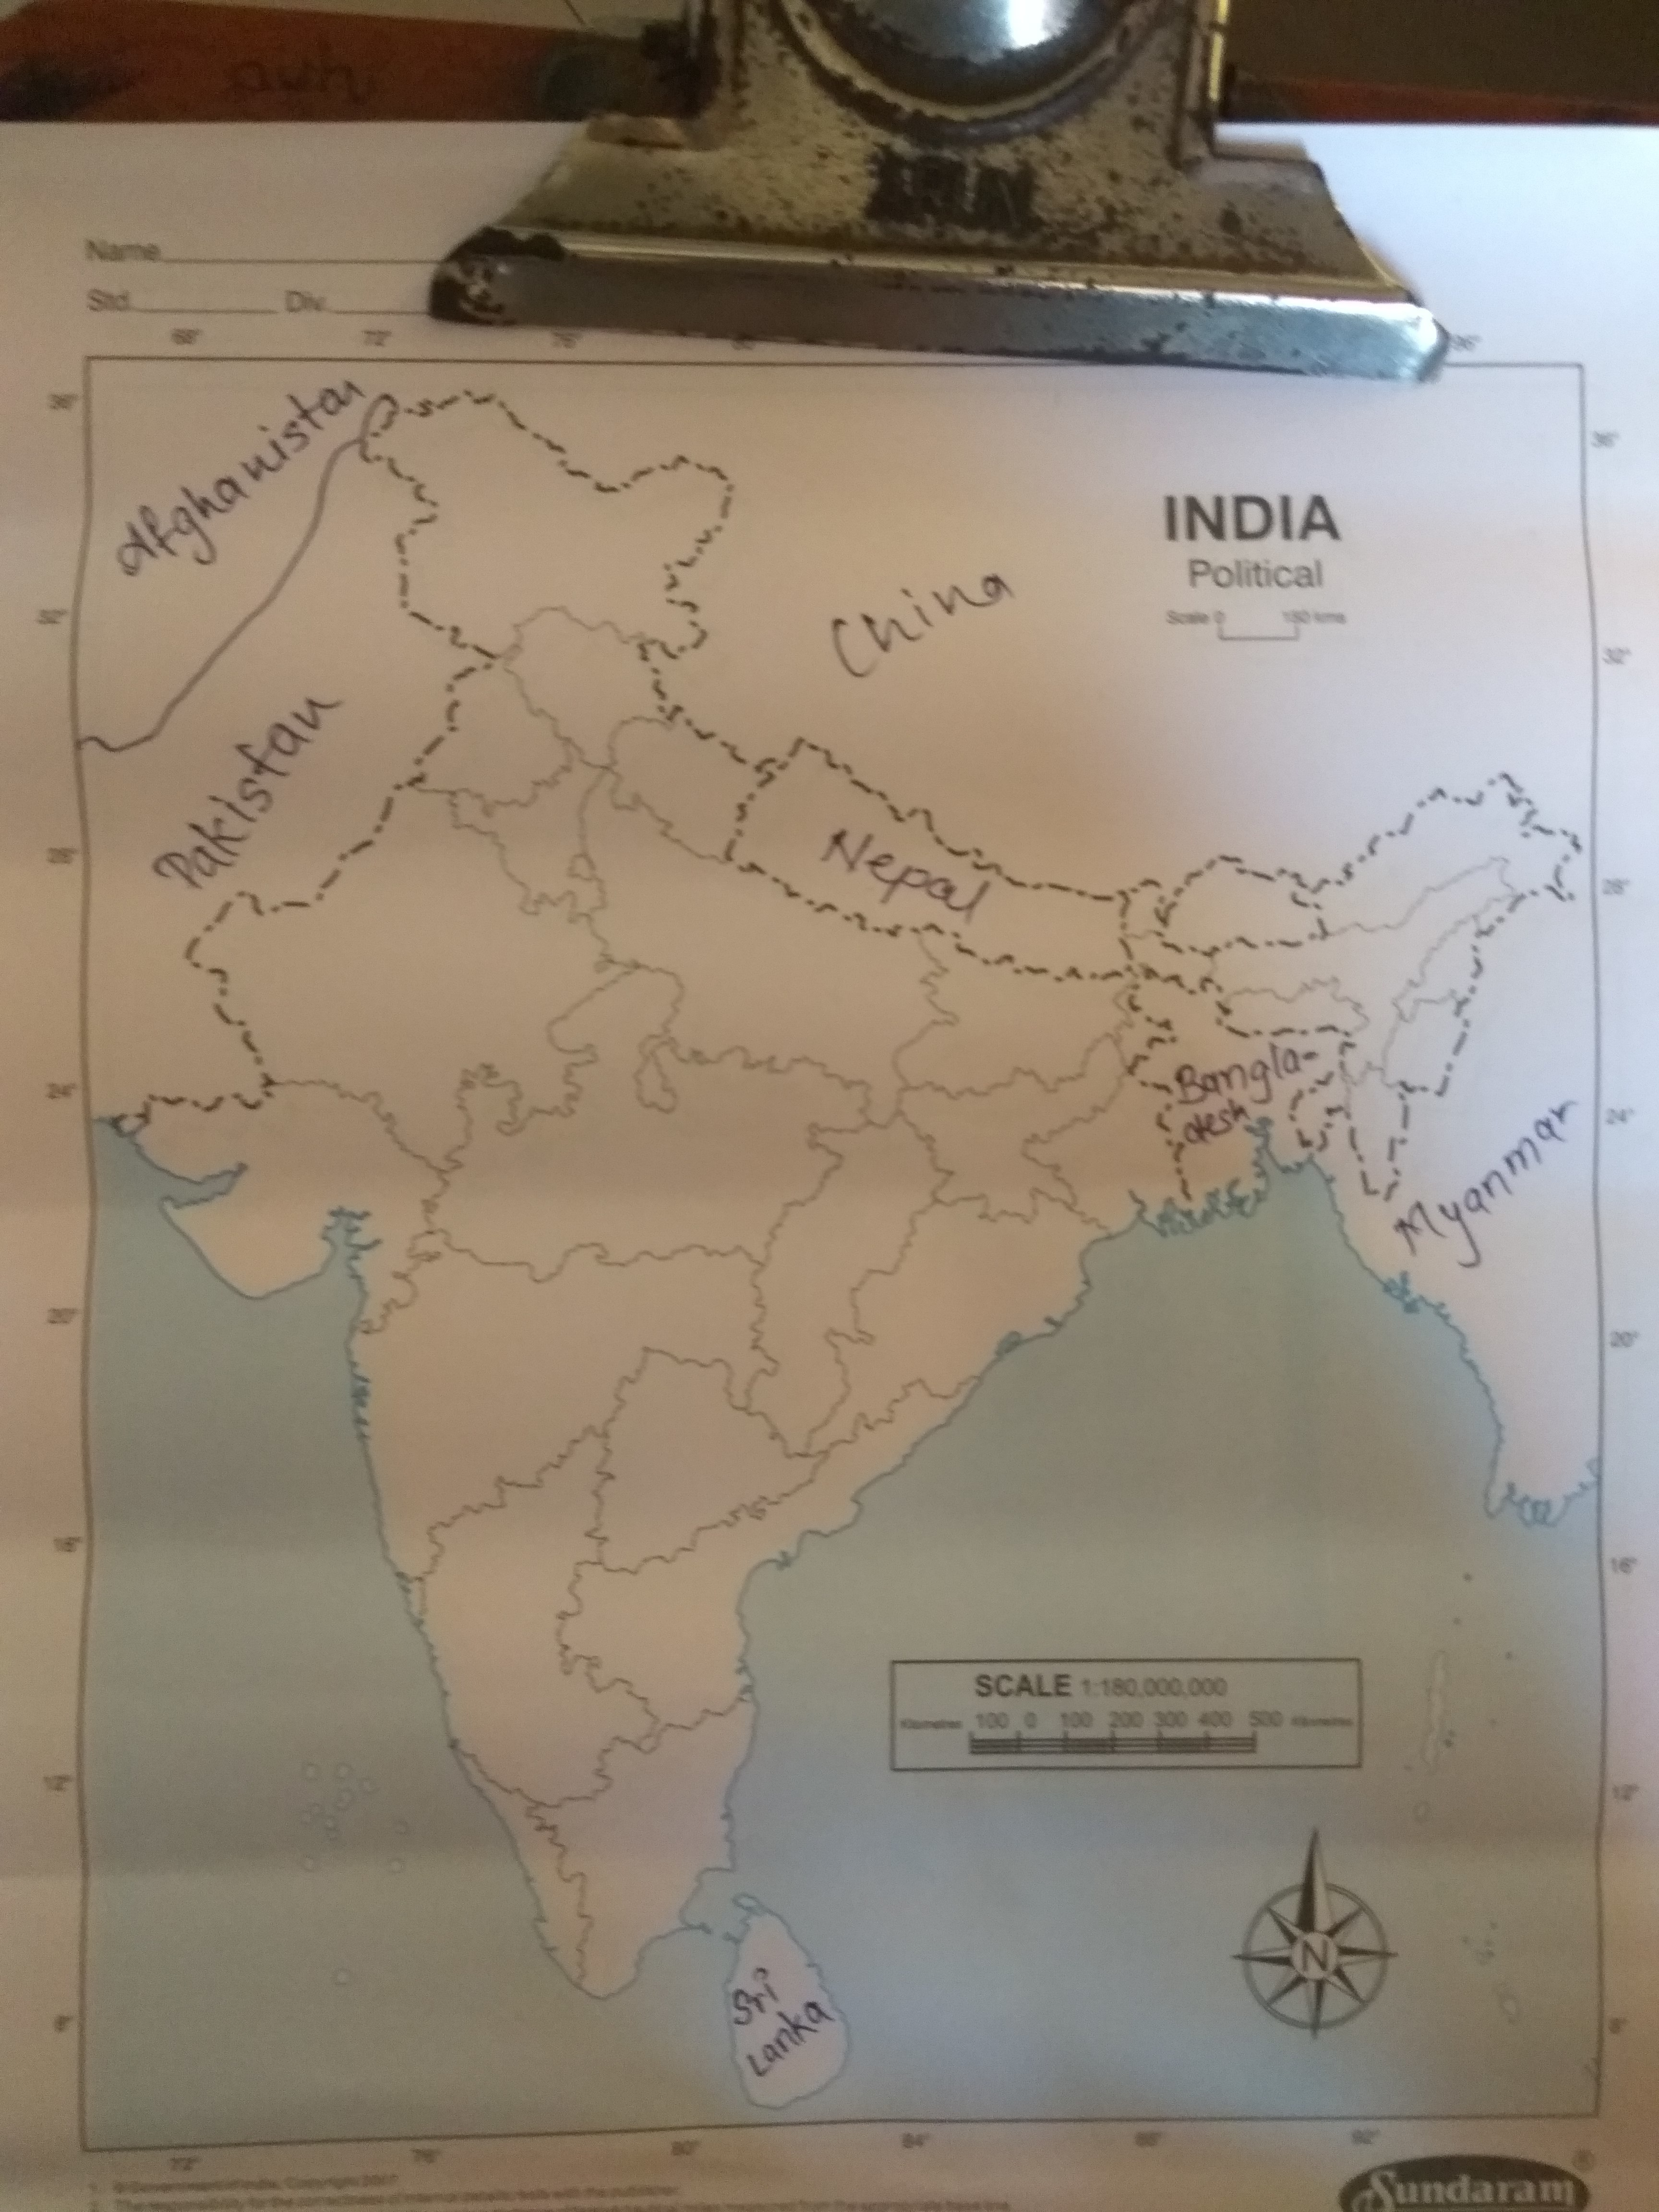 Show the neighbouring countries of india on the map of asia ... India Political Map Of Sri Lanka on political map of crimea, political map of maldives, political map of cayman islands, political map of western sahara, political map of marshall islands, political map of the ivory coast, political map of the arabian sea, political map of indus river, political map of the british isles, political map of the soviet union, political map of republic of congo, political map of réunion, political map of arab countries, political map of cyprus, political map of malaysia, political map of montserrat, political map of west bank, political map of southeast europe, political map of mekong river, political map of u s a,